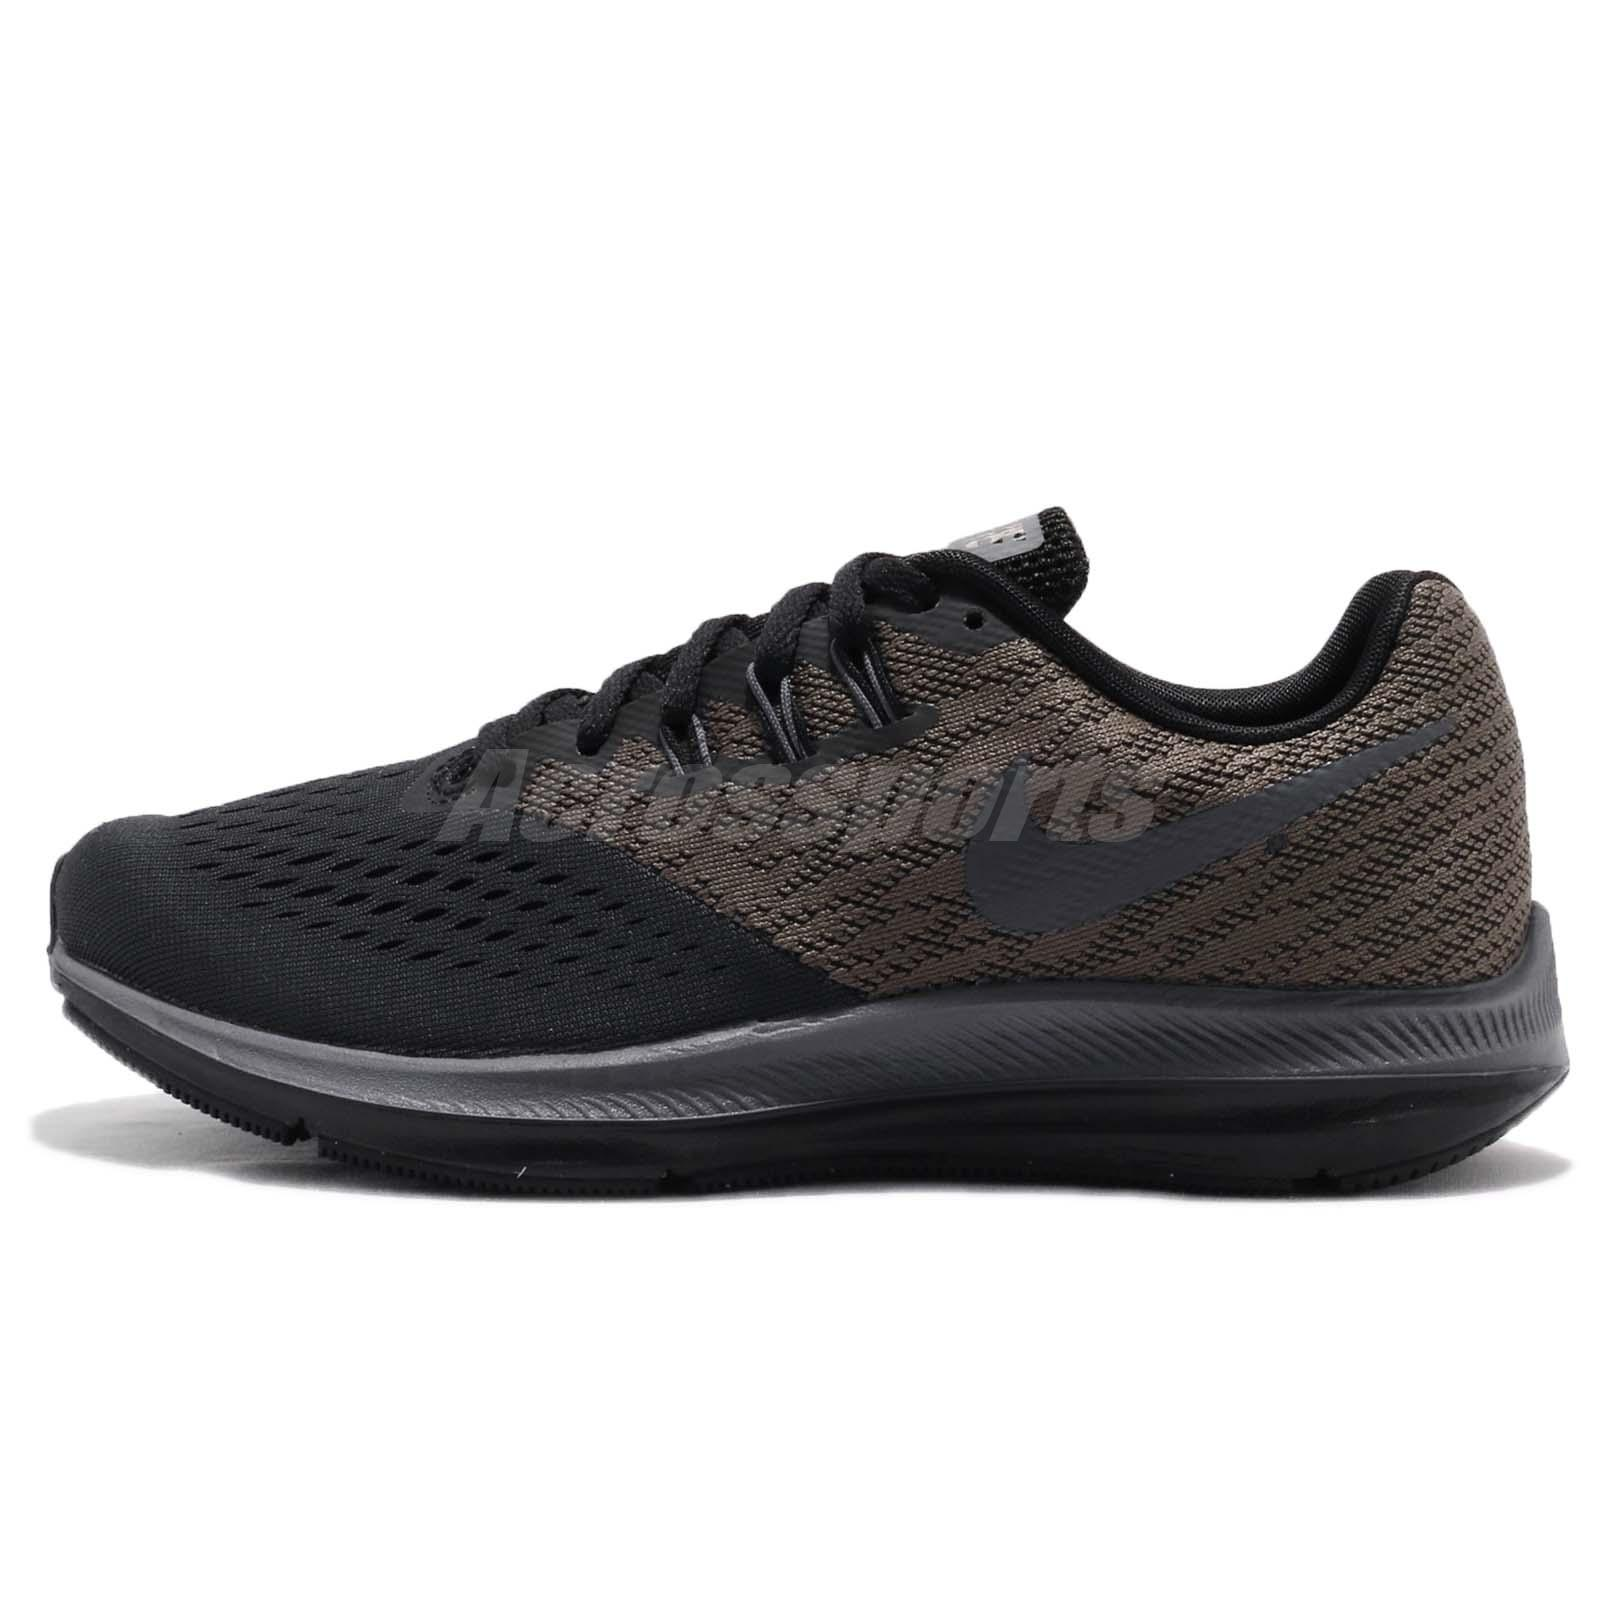 29f0002b935367 Nike Wmns Zoom Winflo 4 IV Grey Black Women Running Shoes Sneakers 898485- 004